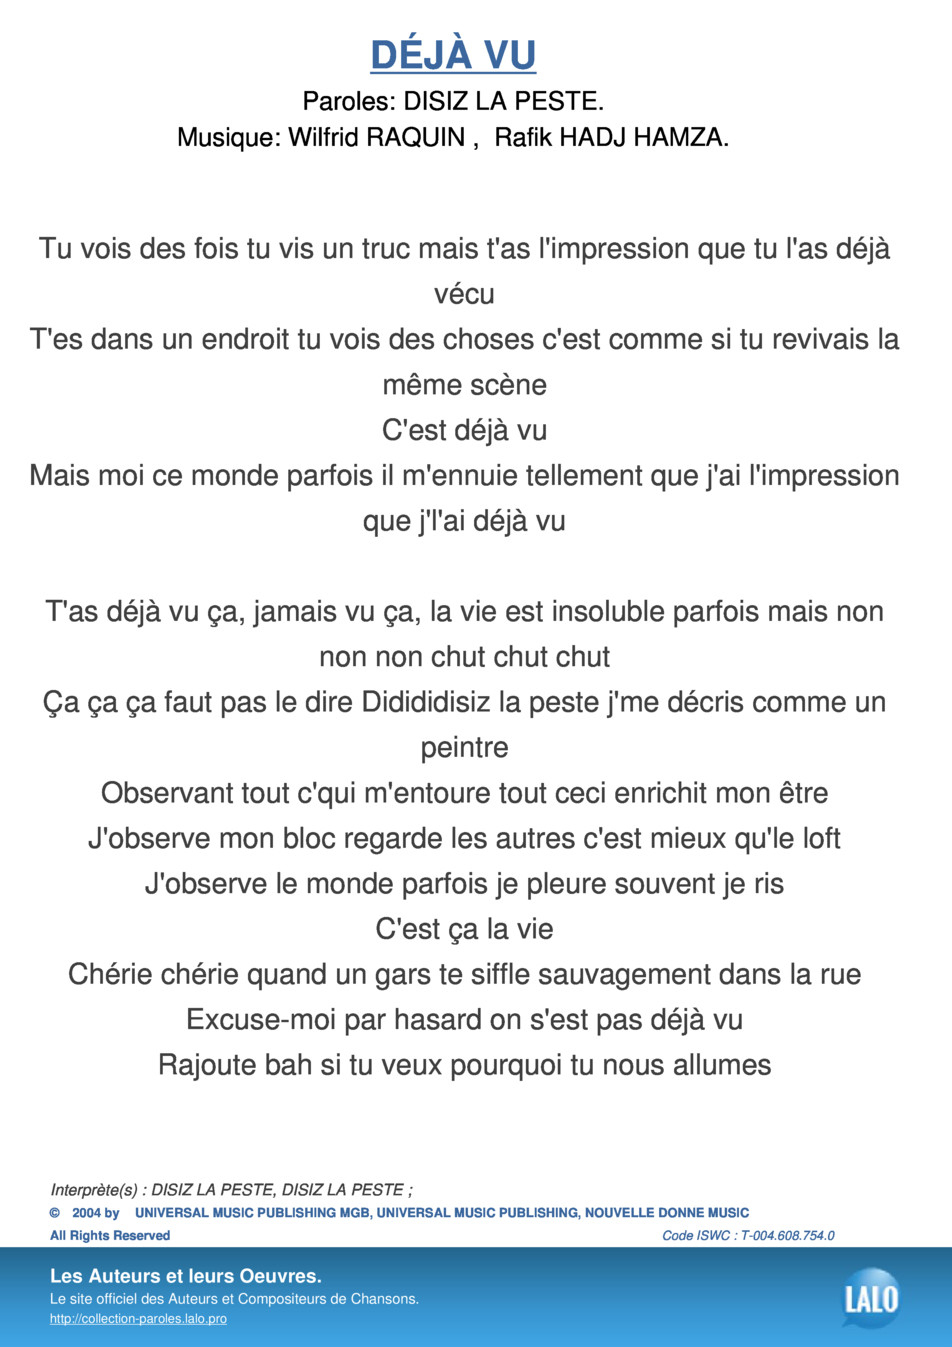 Paroles Et Musique De Deja Vu Disiz La Peste - Lalo.pro dedans L As Tu Vu Paroles